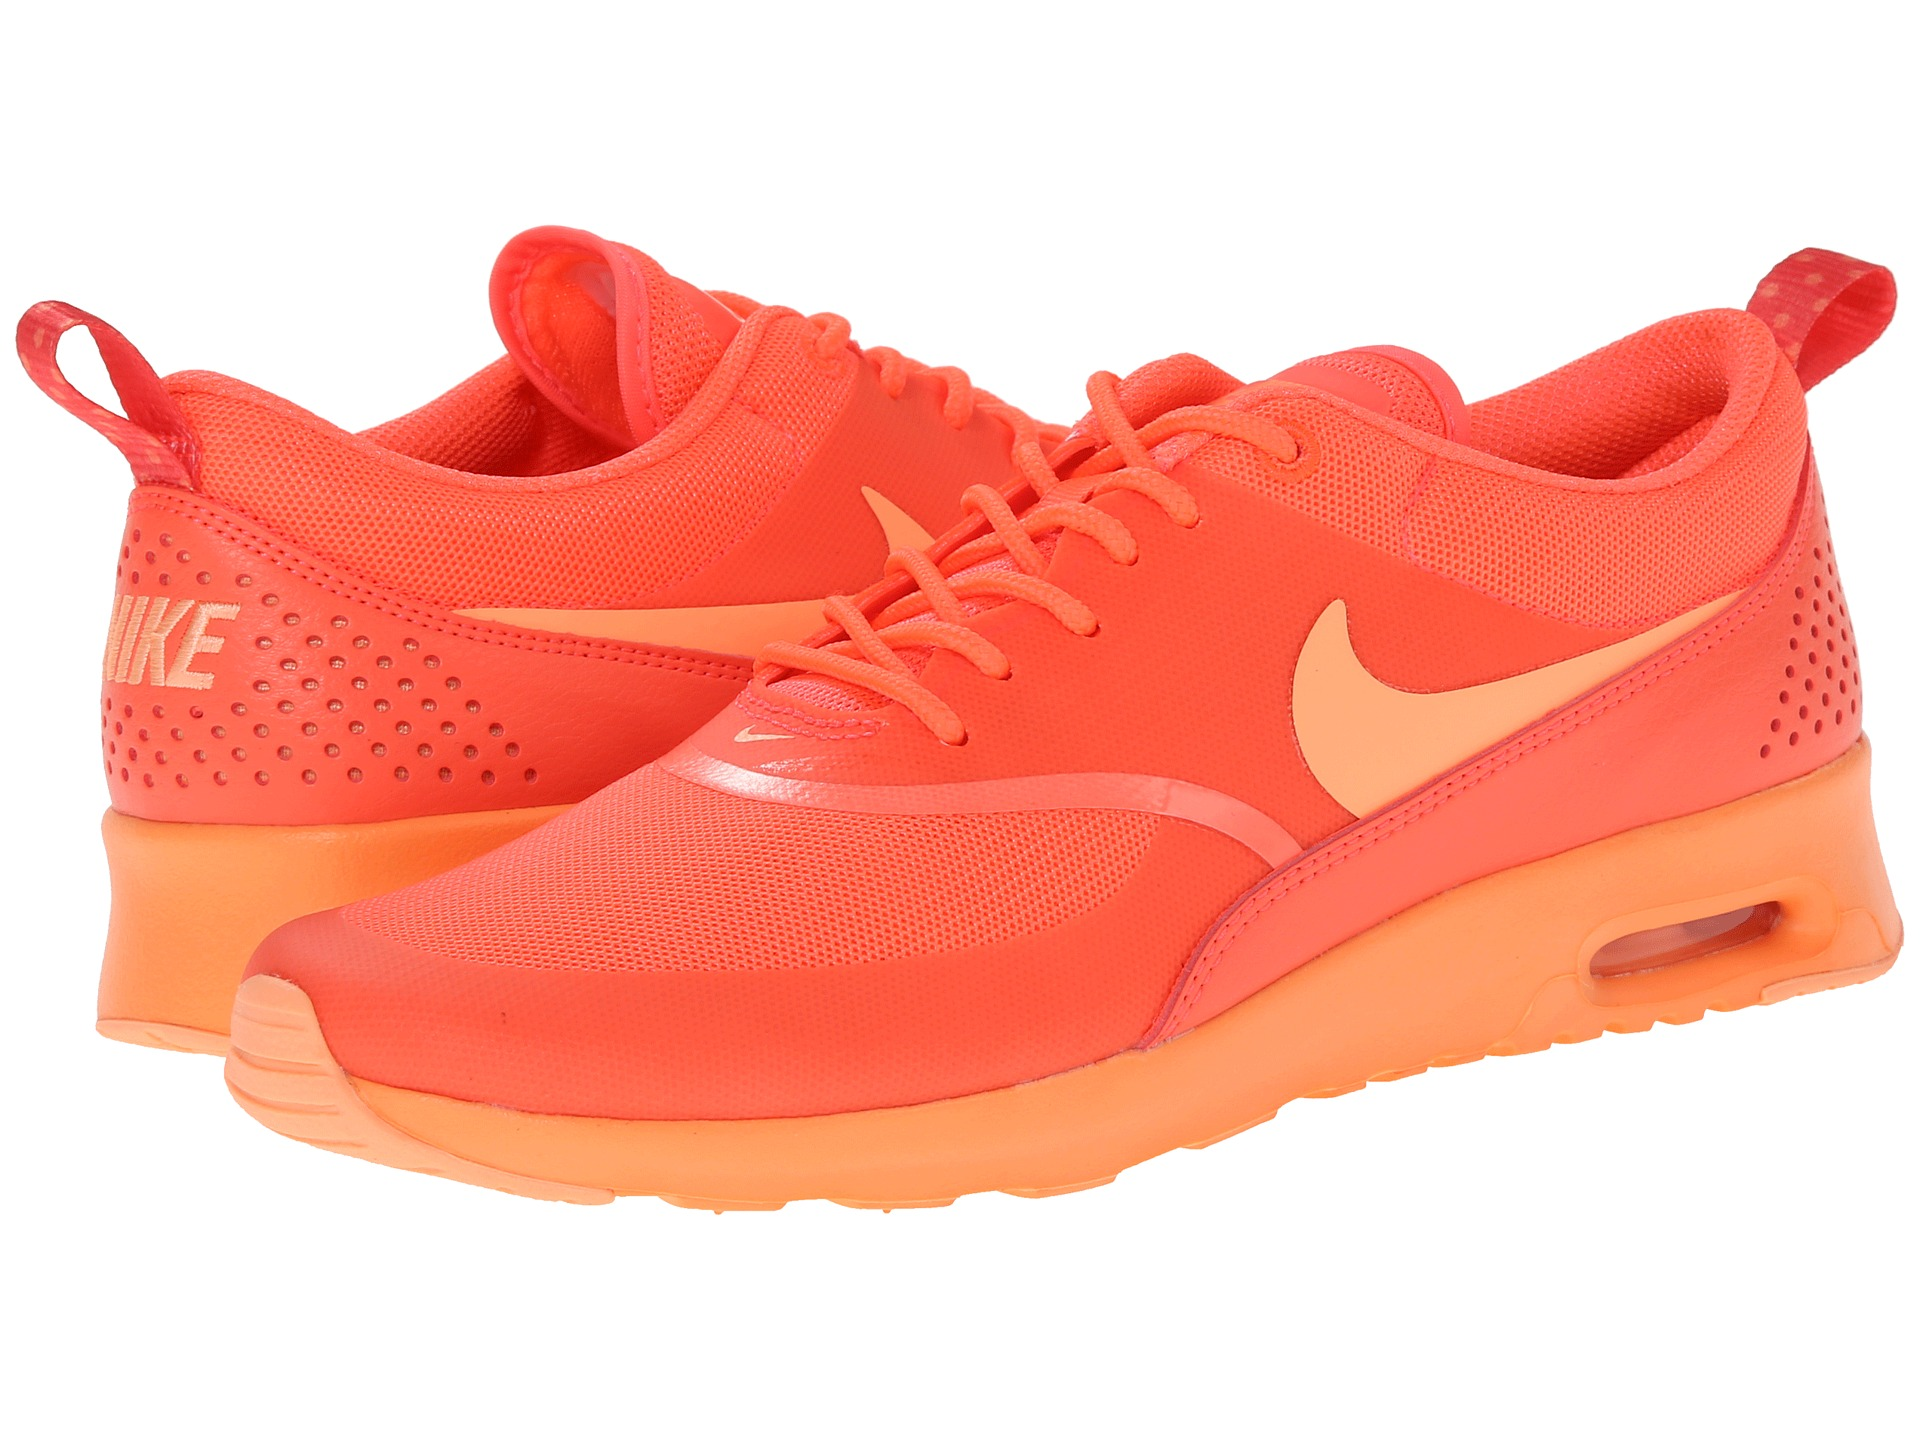 d4ff3d71514d Buy zappos nike thea - 56% OFF